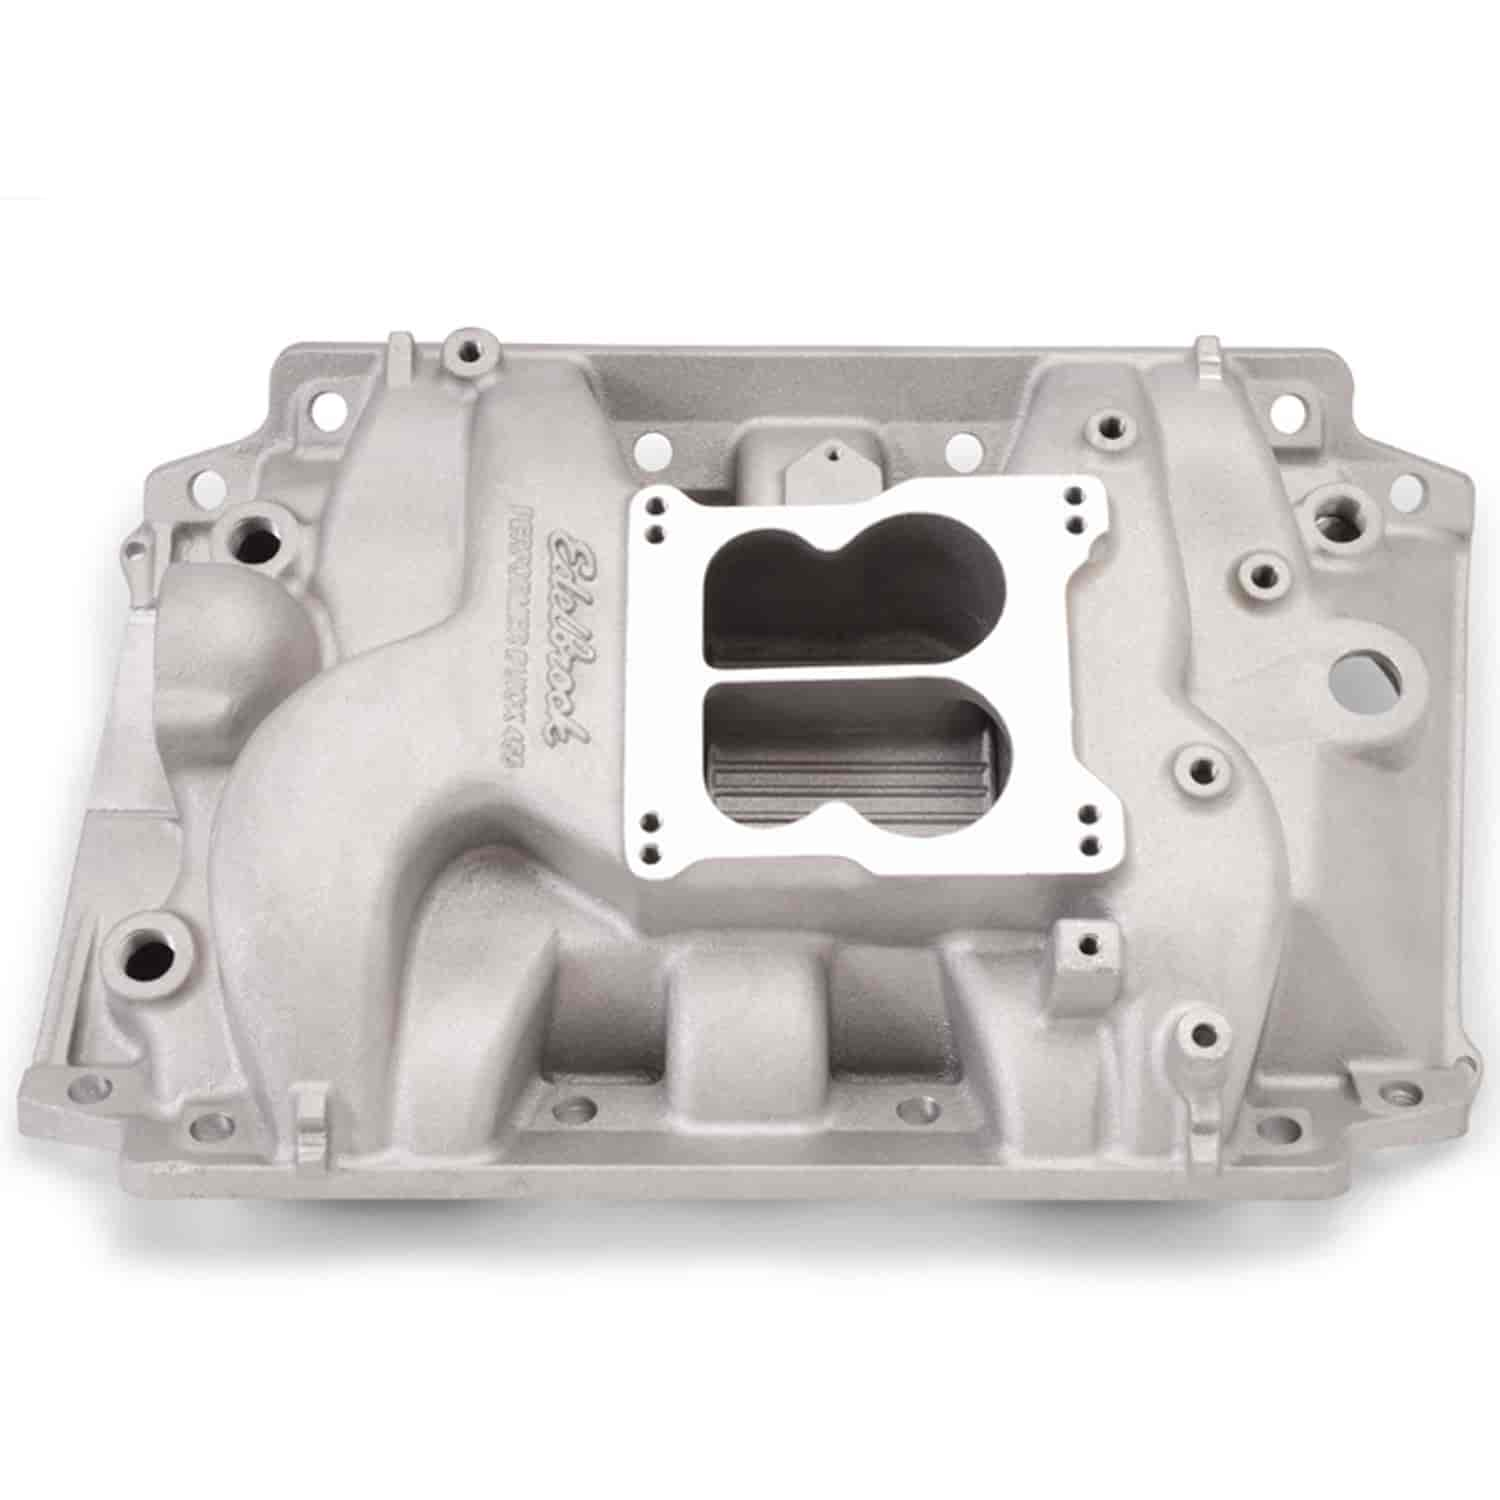 Buick 340 Engine For Sale: Edelbrock 2146 Performer Buick 455 Intake Manifold Buick